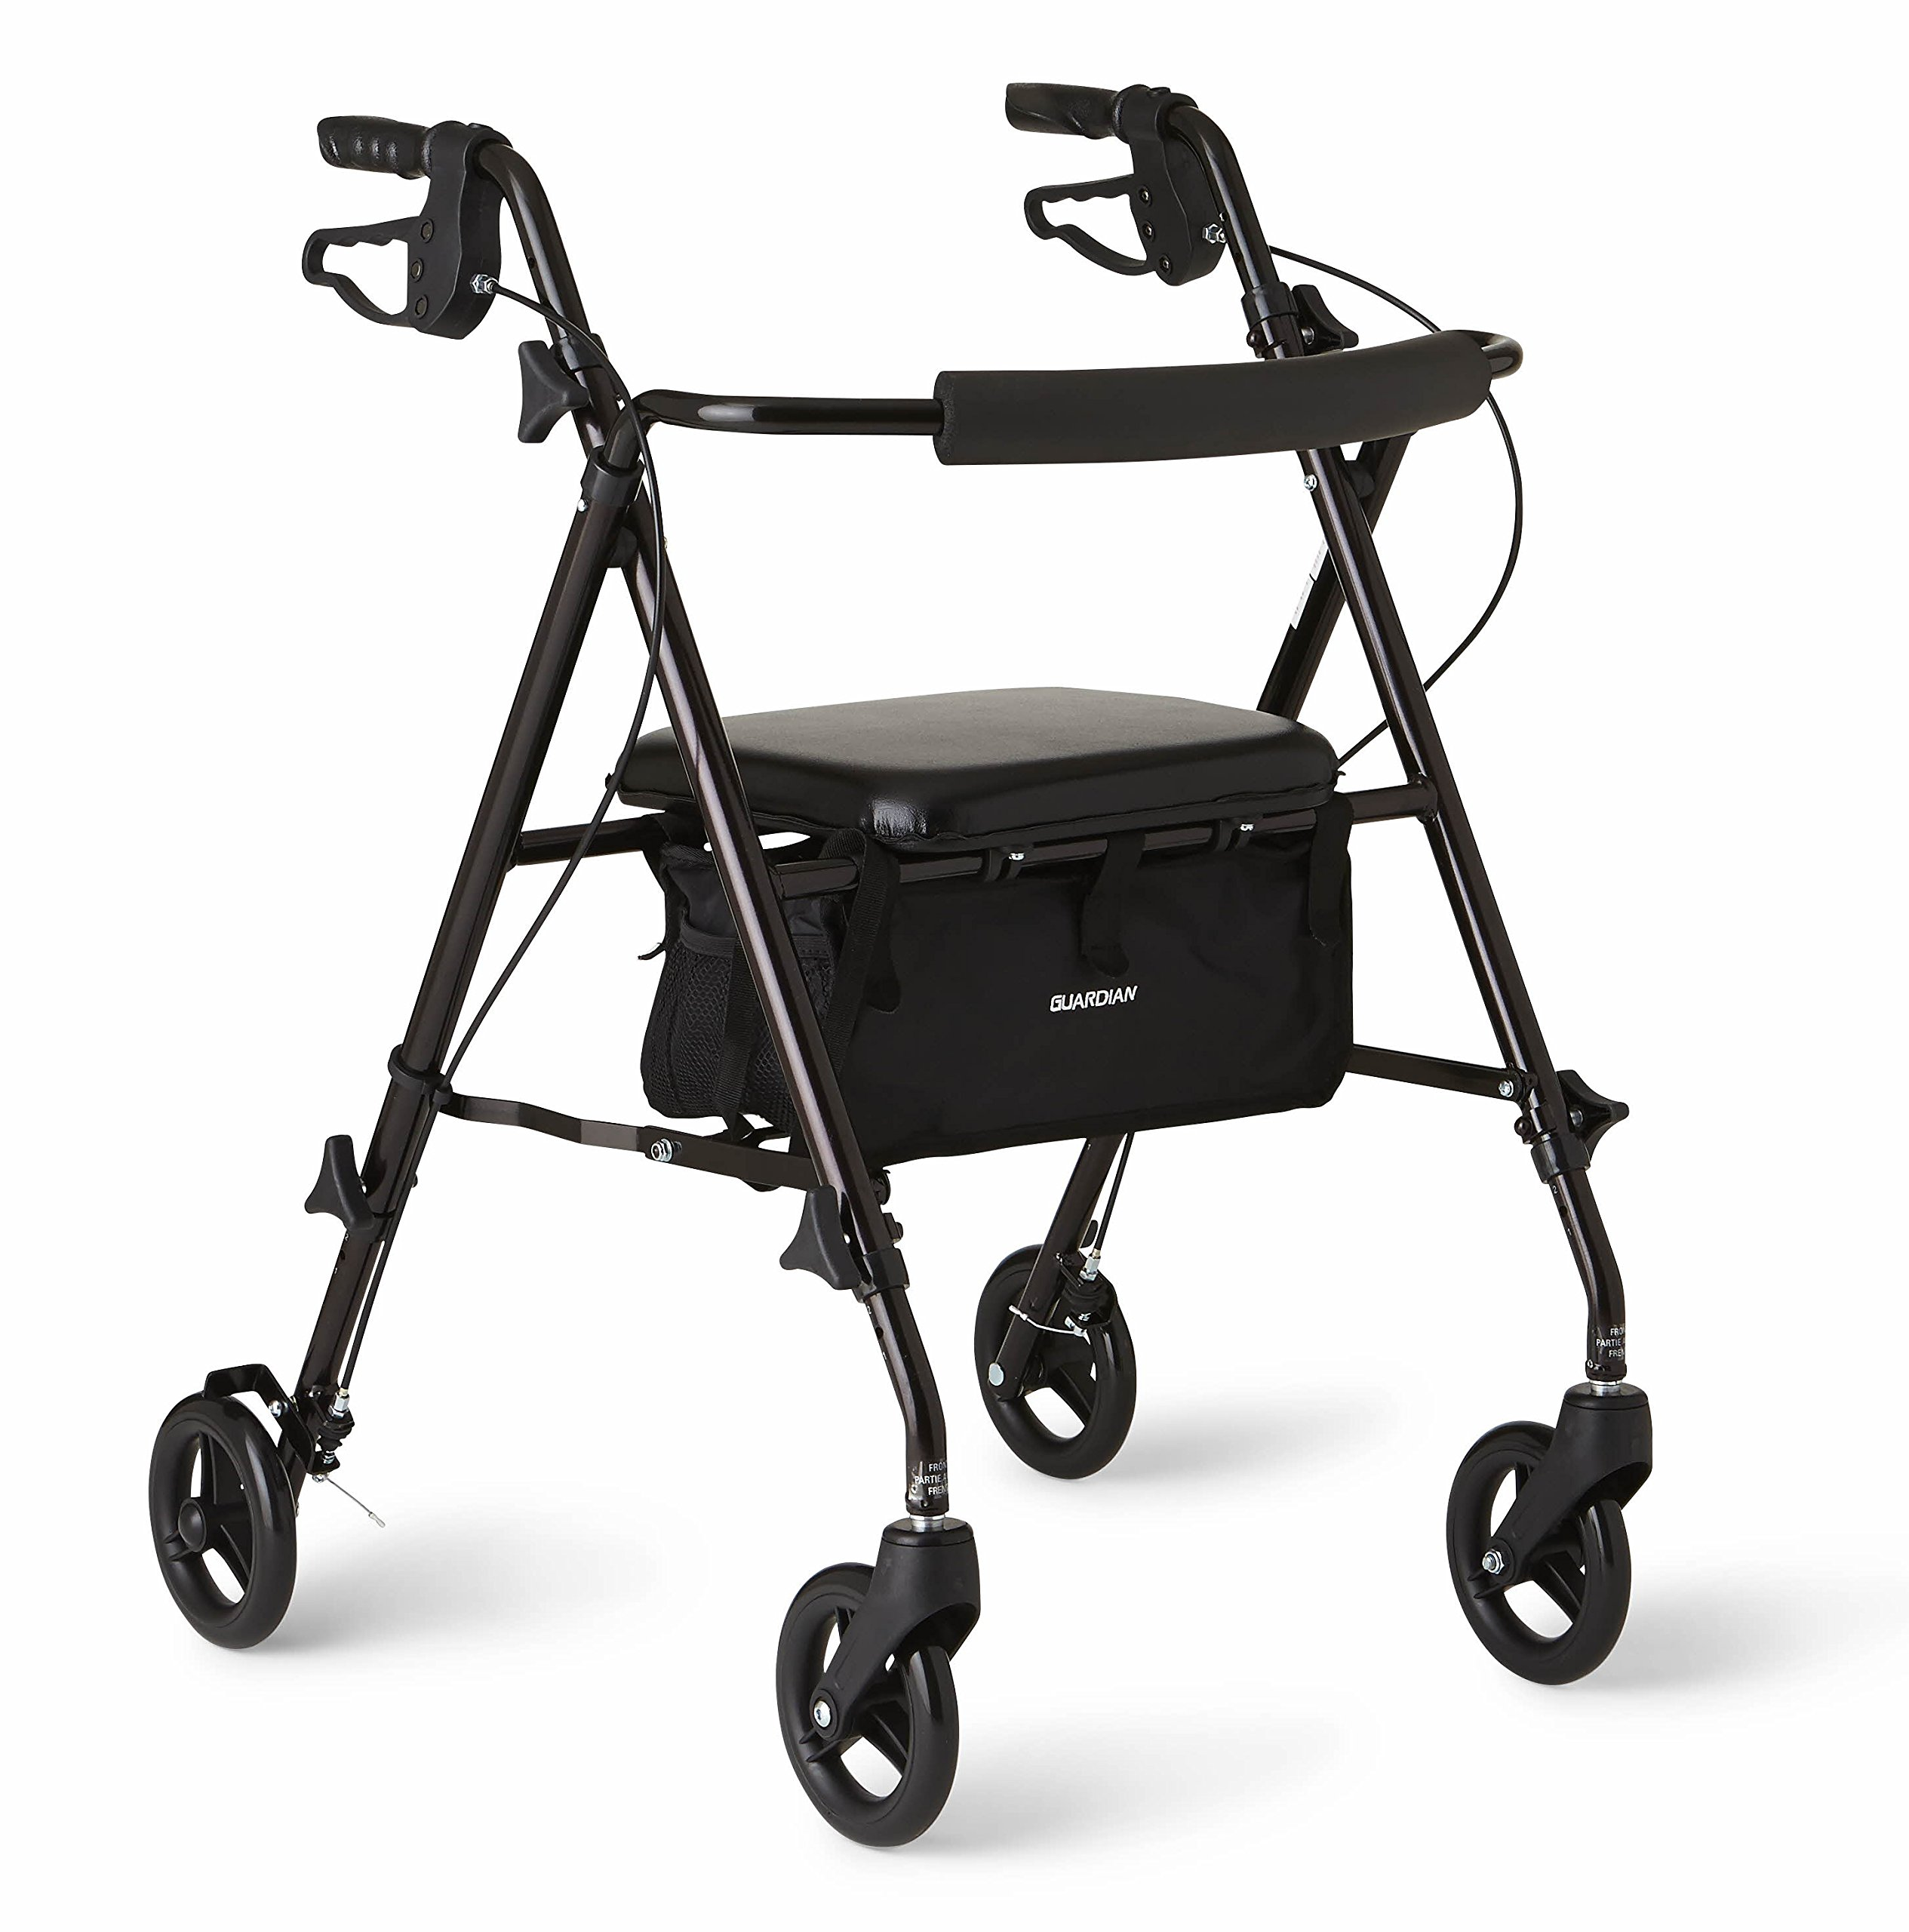 Medline Freedom Lightweight Folding Aluminum Mobility Rollator Walker with 6-inch Wheels, Adjustable Seat and Arms, Black by Medline